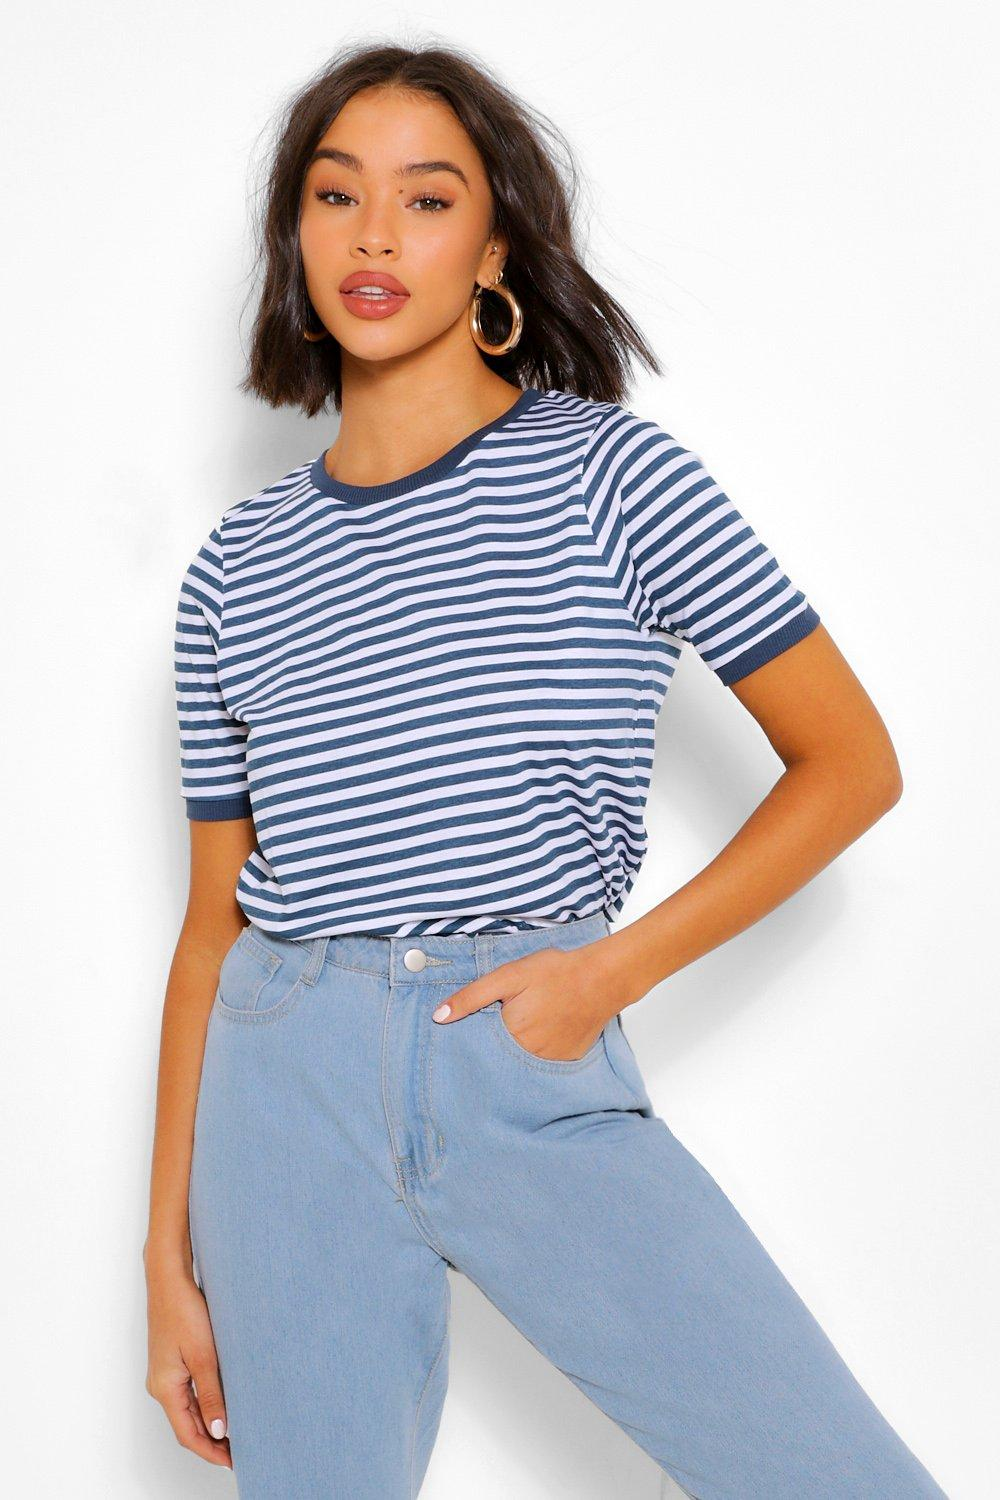 1940s Blouses and Tops Womens Stripe Ringer T Shirt - Navy - M $8.40 AT vintagedancer.com